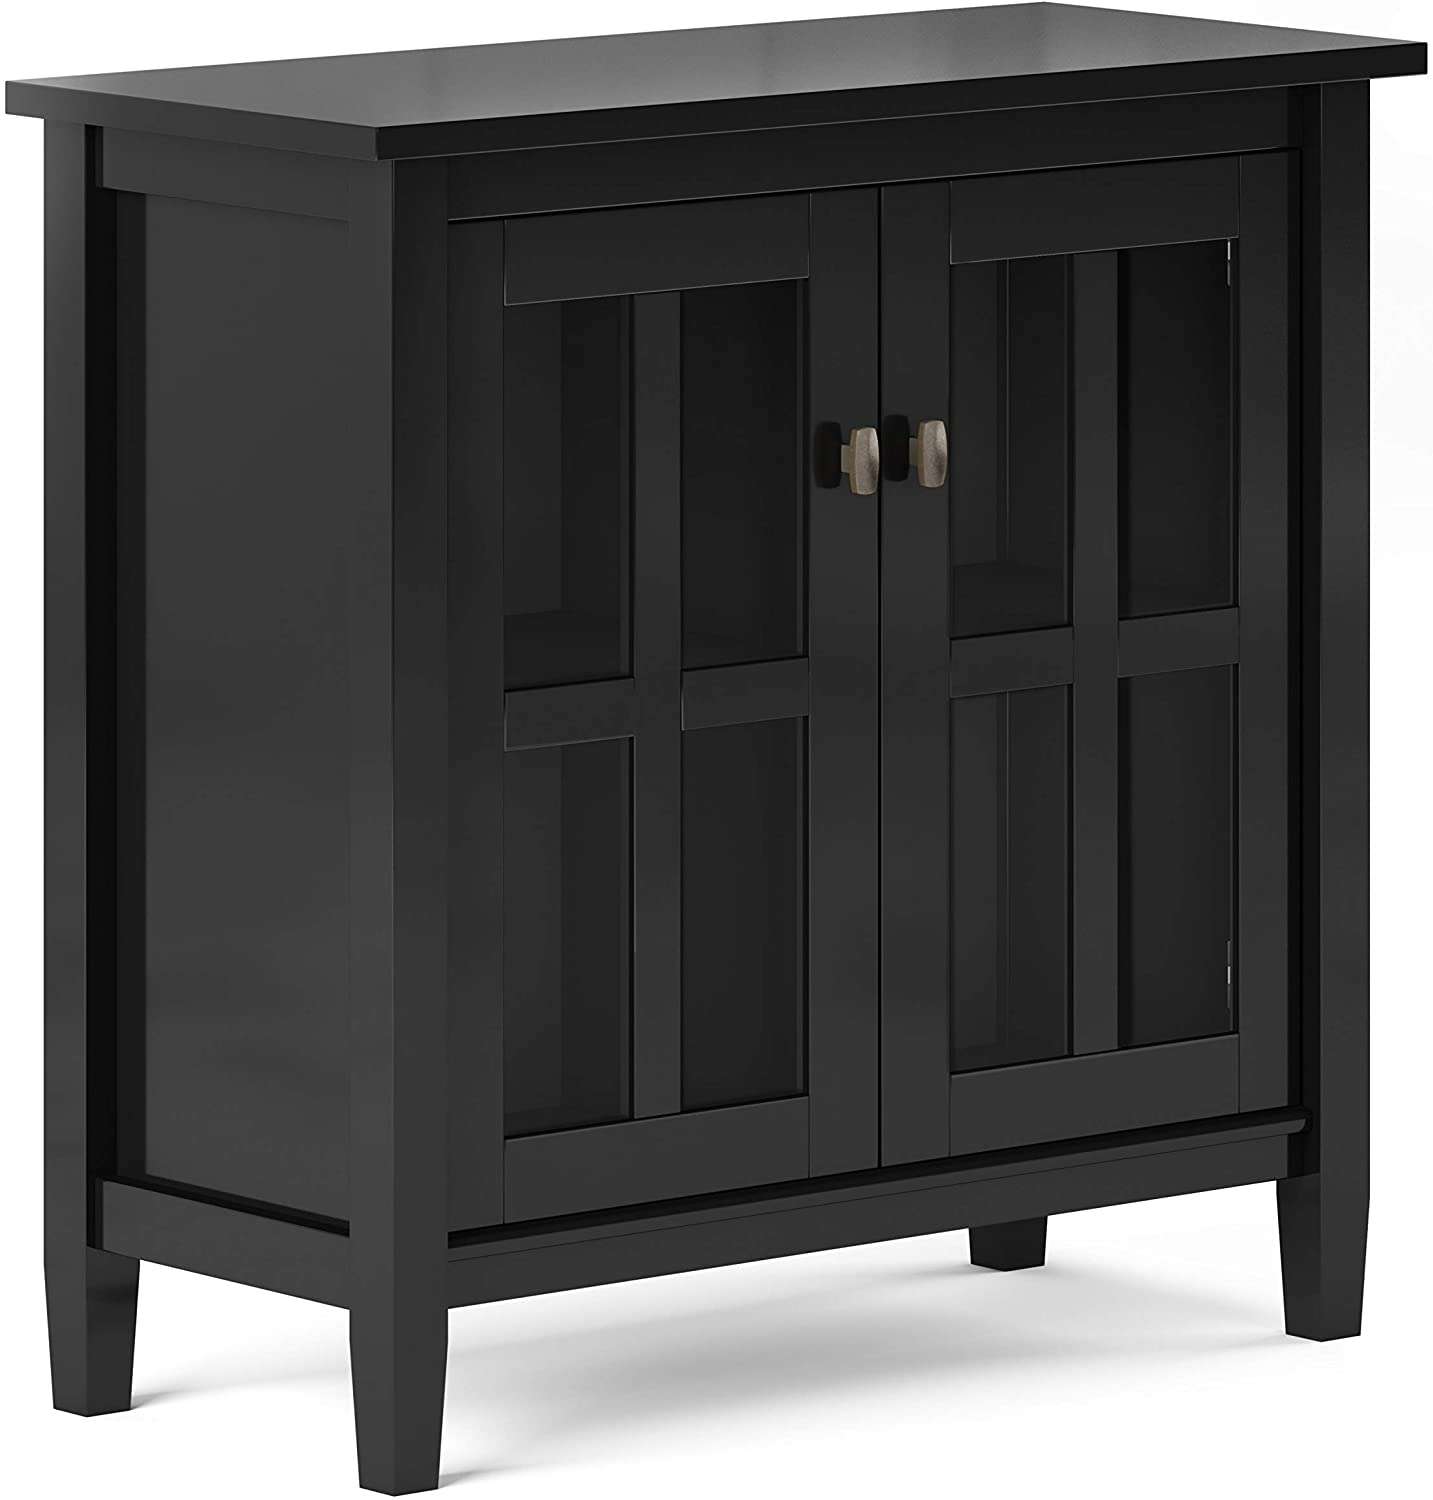 SIMPLIHOME Warm Shaker SOLID WOOD 32 inch Wide Rustic Low Storage Cabinet in Black, with 2 Adjustable Shelves, Tempered Glass Door